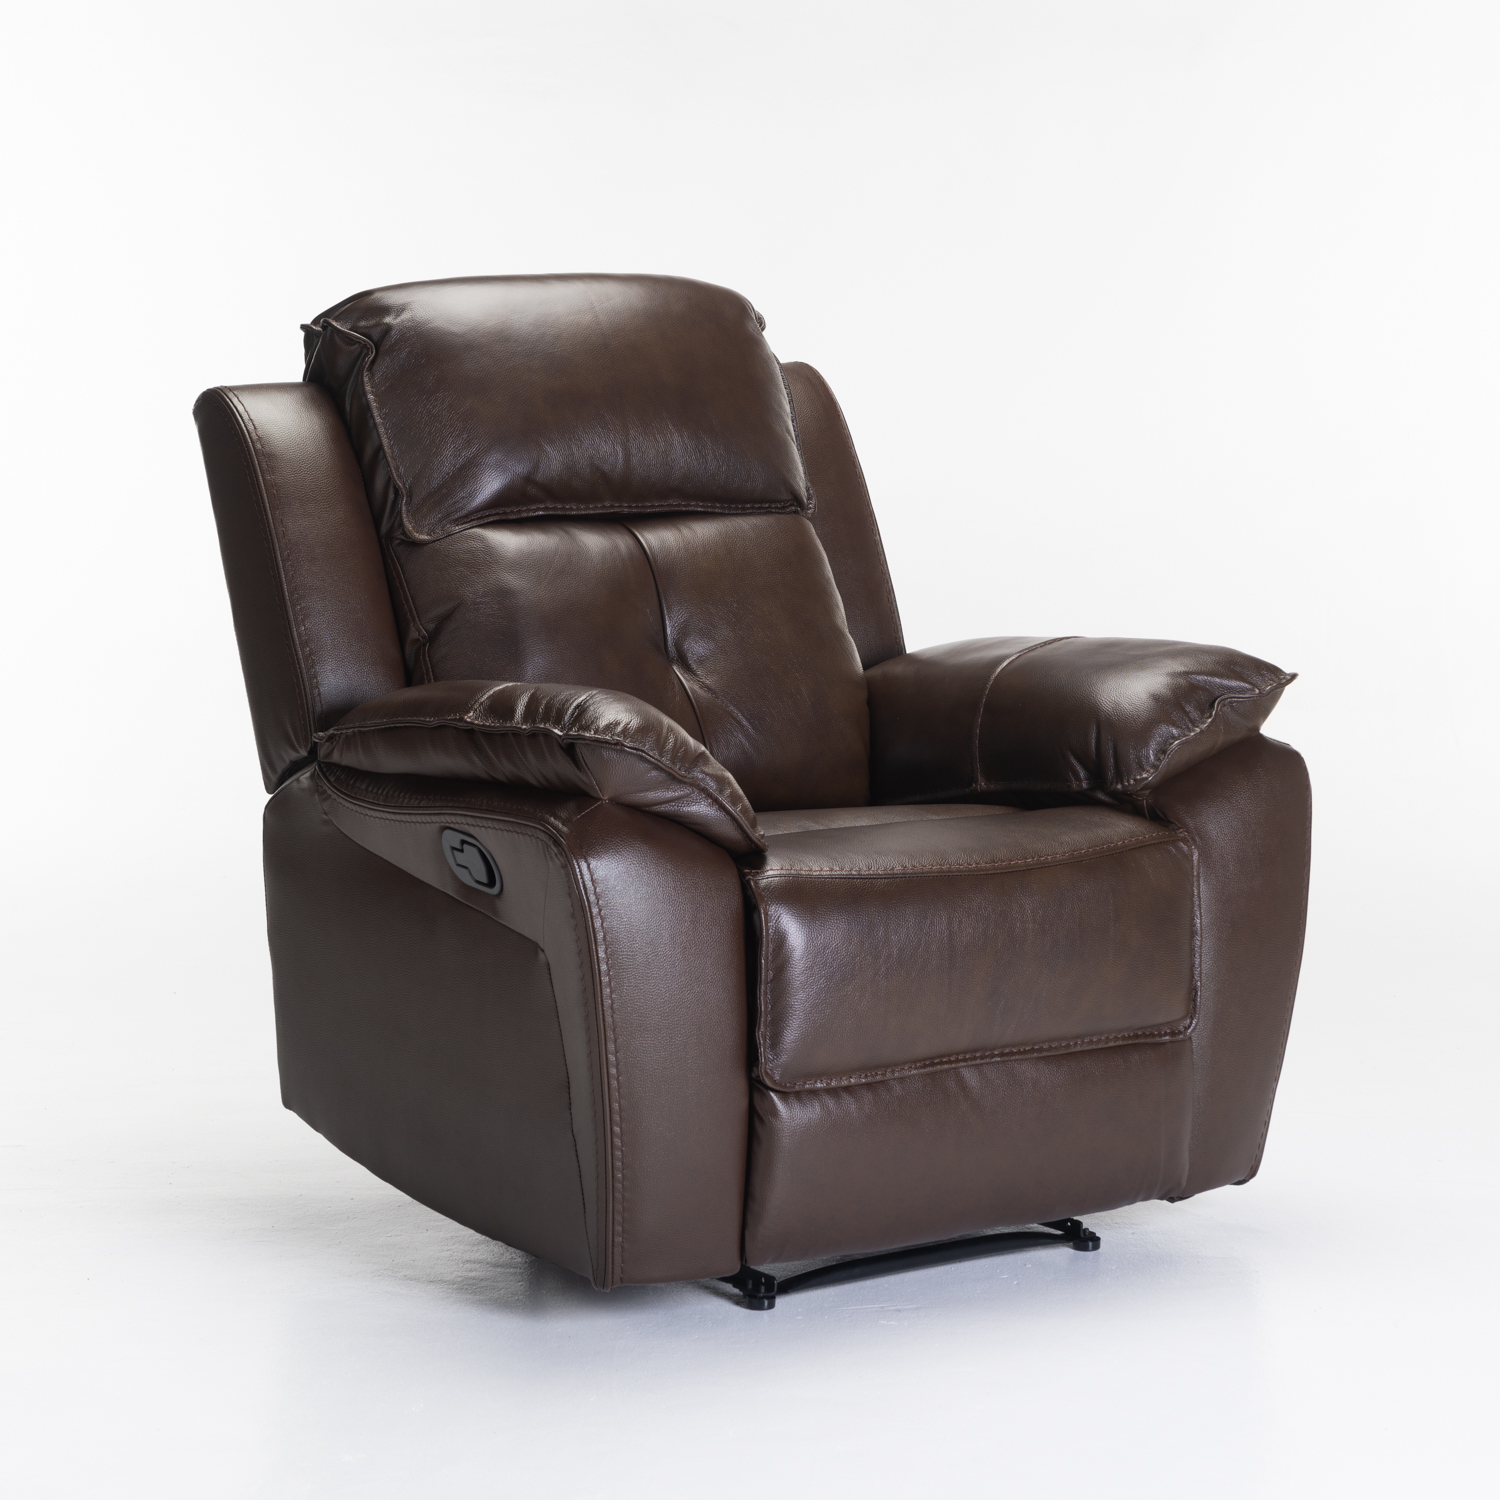 COMO TOP LEATHER UPPER ARMCHAIR RECLINER